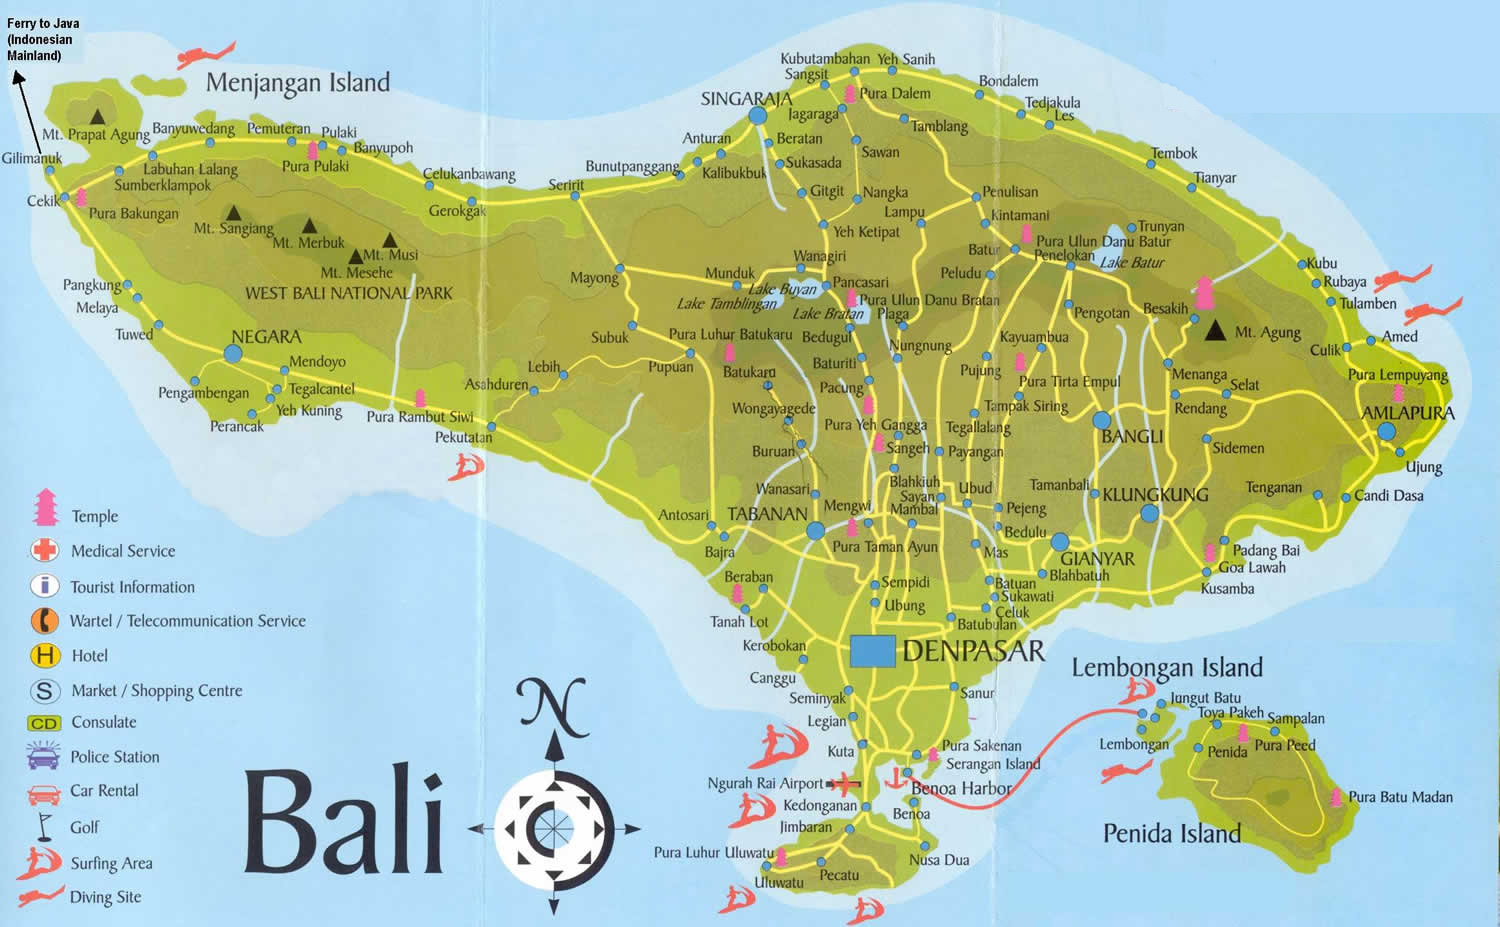 Bali jeep adventure bali jeep adventure official website bali map gumiabroncs Gallery